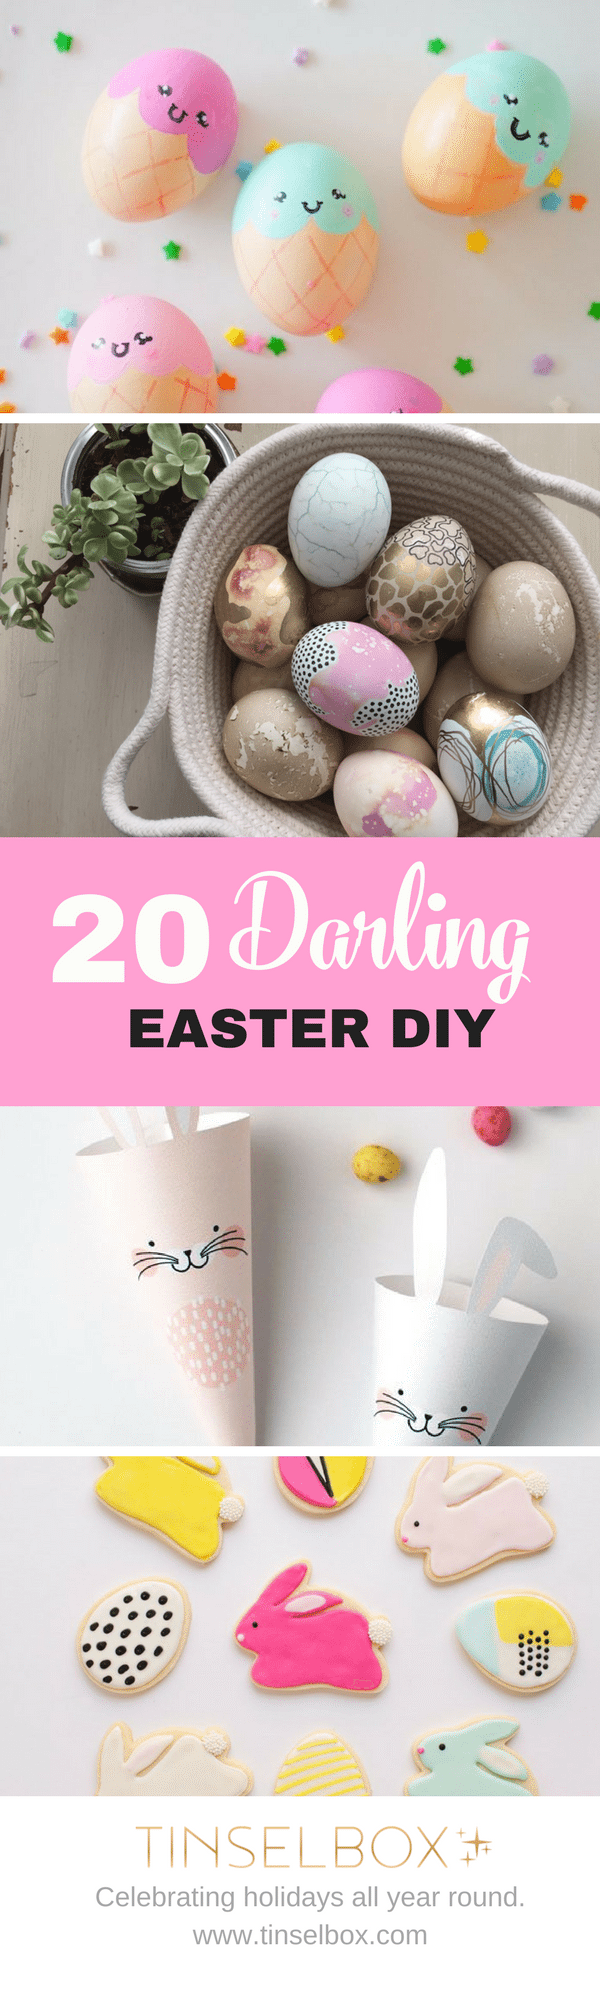 20 Darling Easter DIY - the best of Pinterest